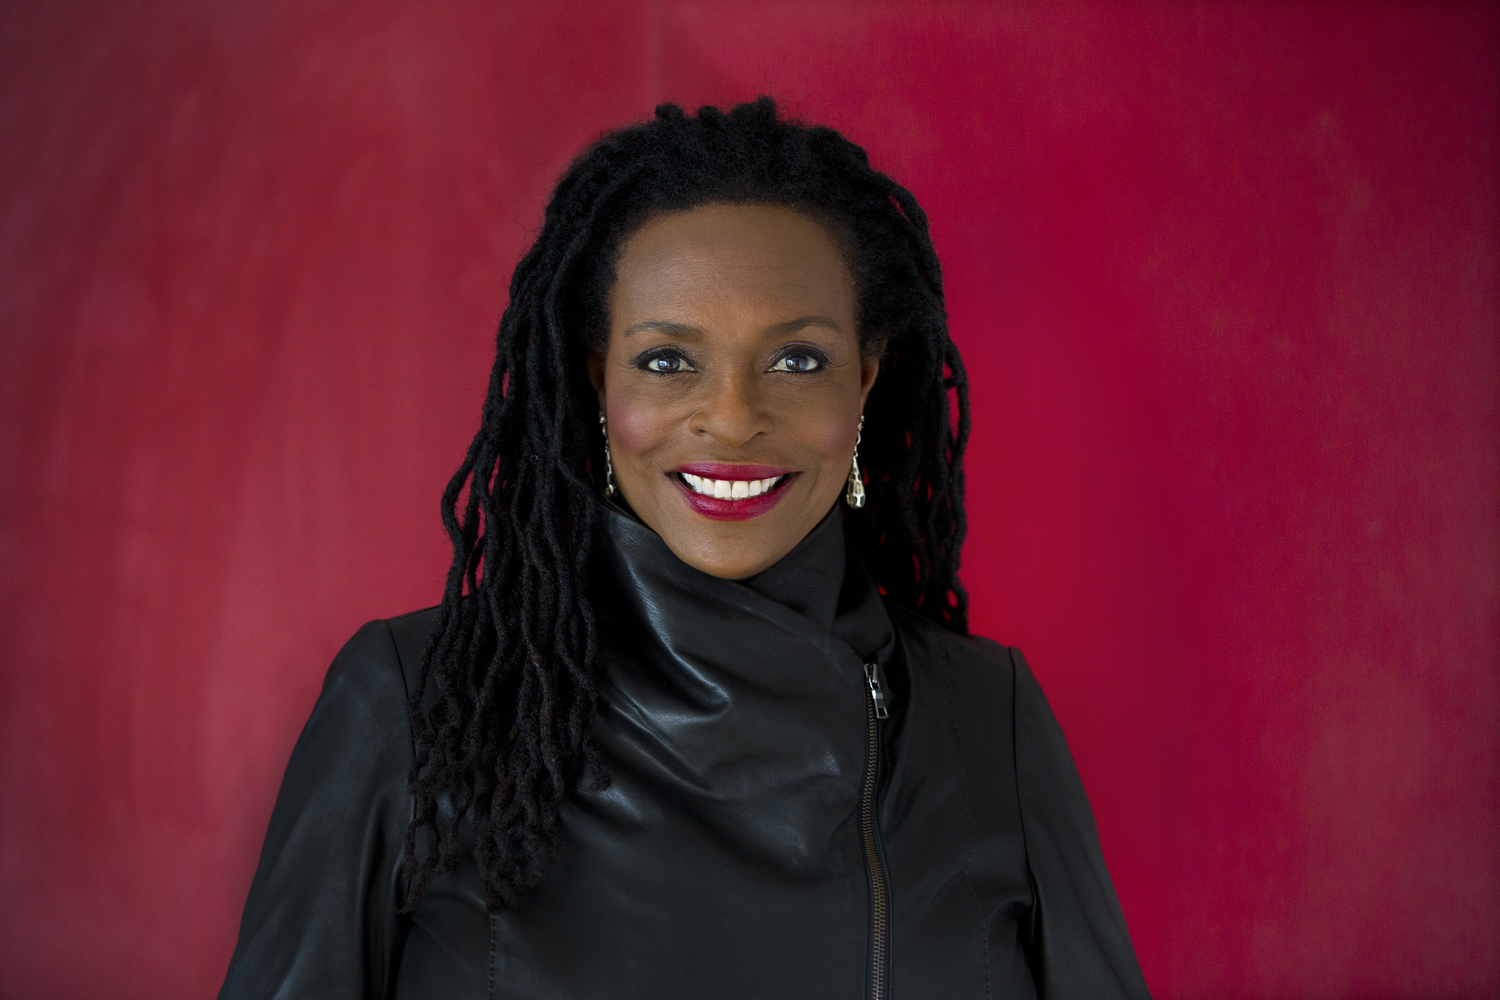 Recording: The 2021 Lawrence Lecture with Reverend Jacqueline J. Lewis, Ph.D.